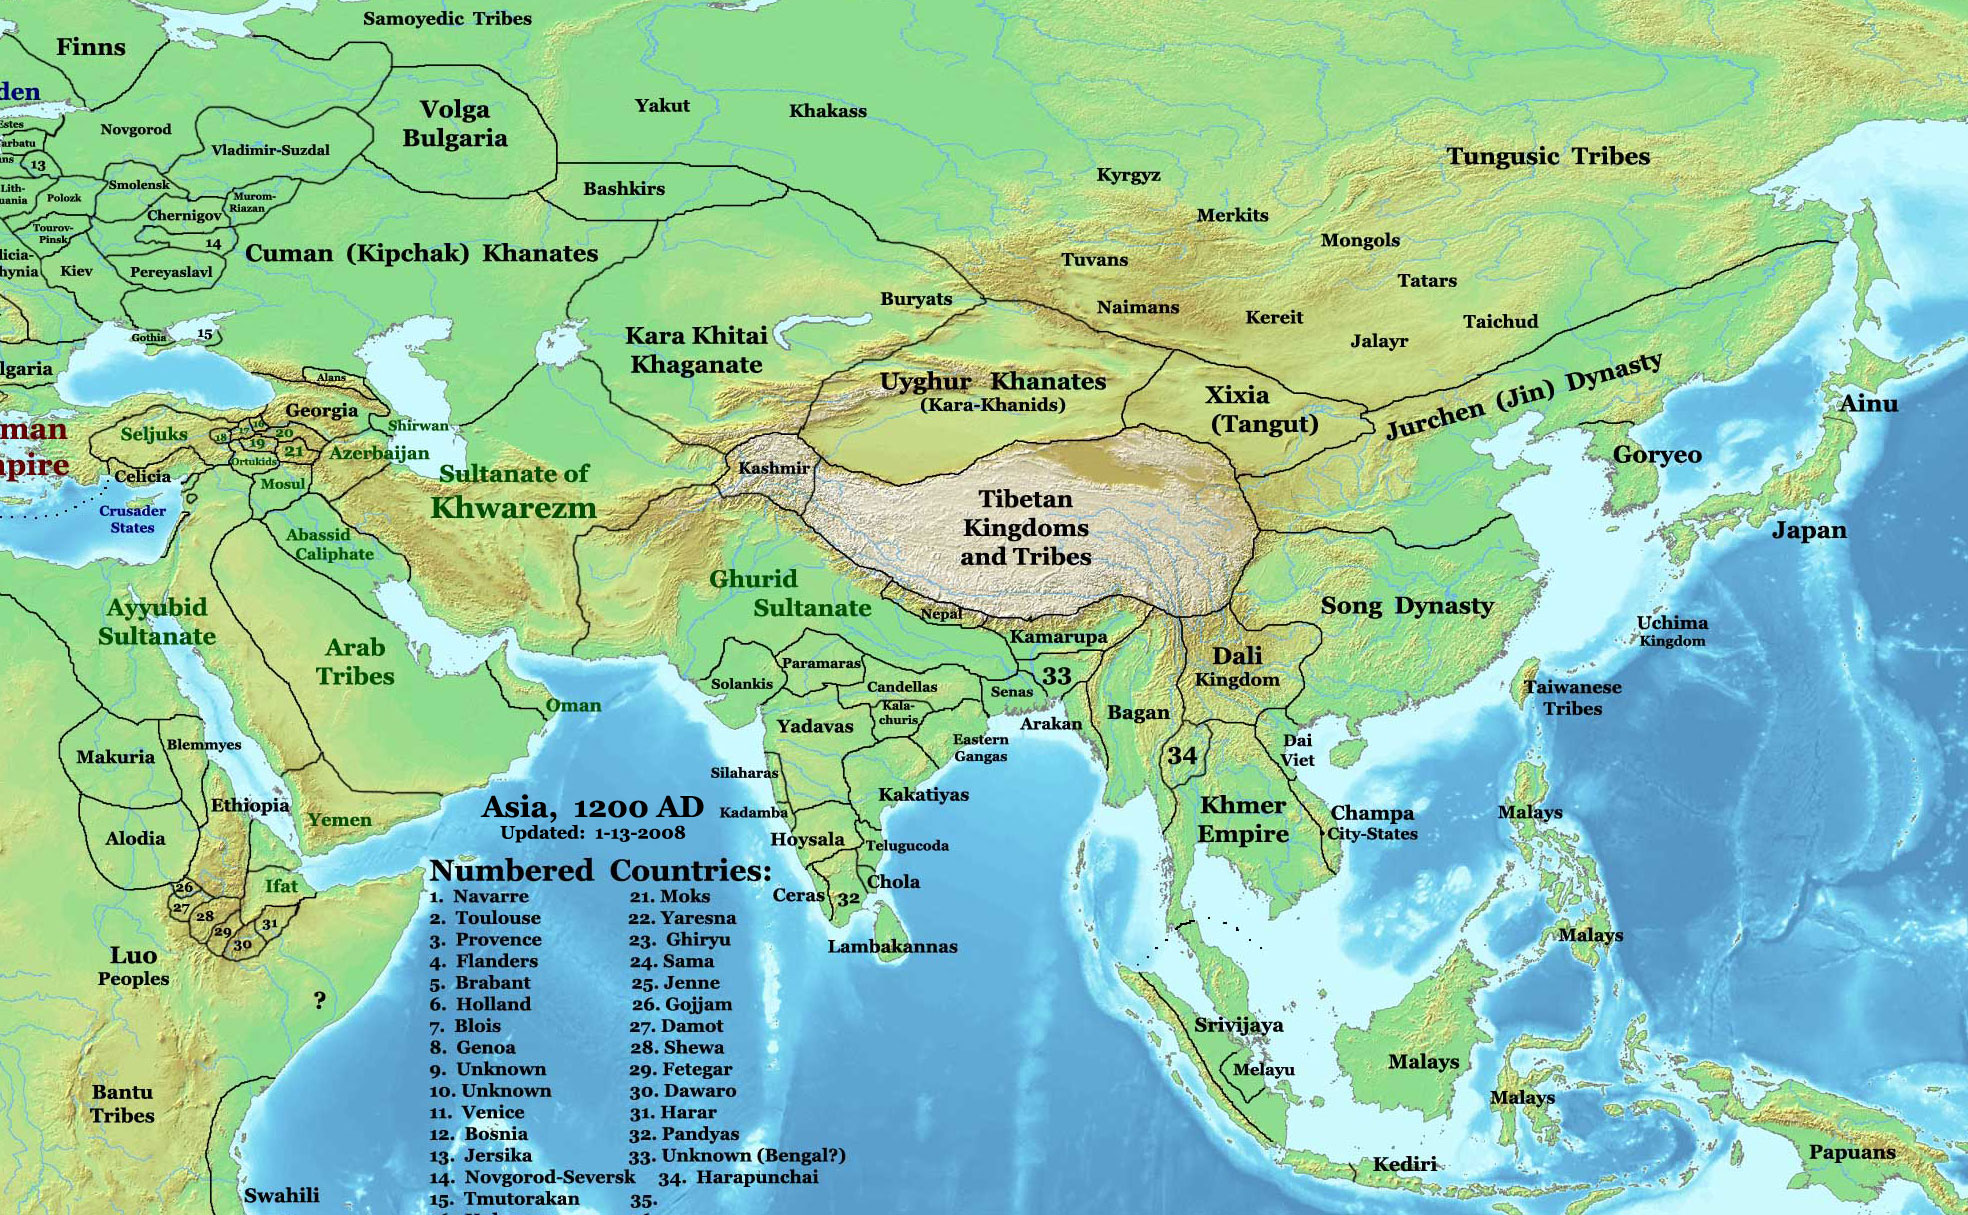 https://i2.wp.com/upload.wikimedia.org/wikipedia/commons/1/16/Asia_1200ad.jpg